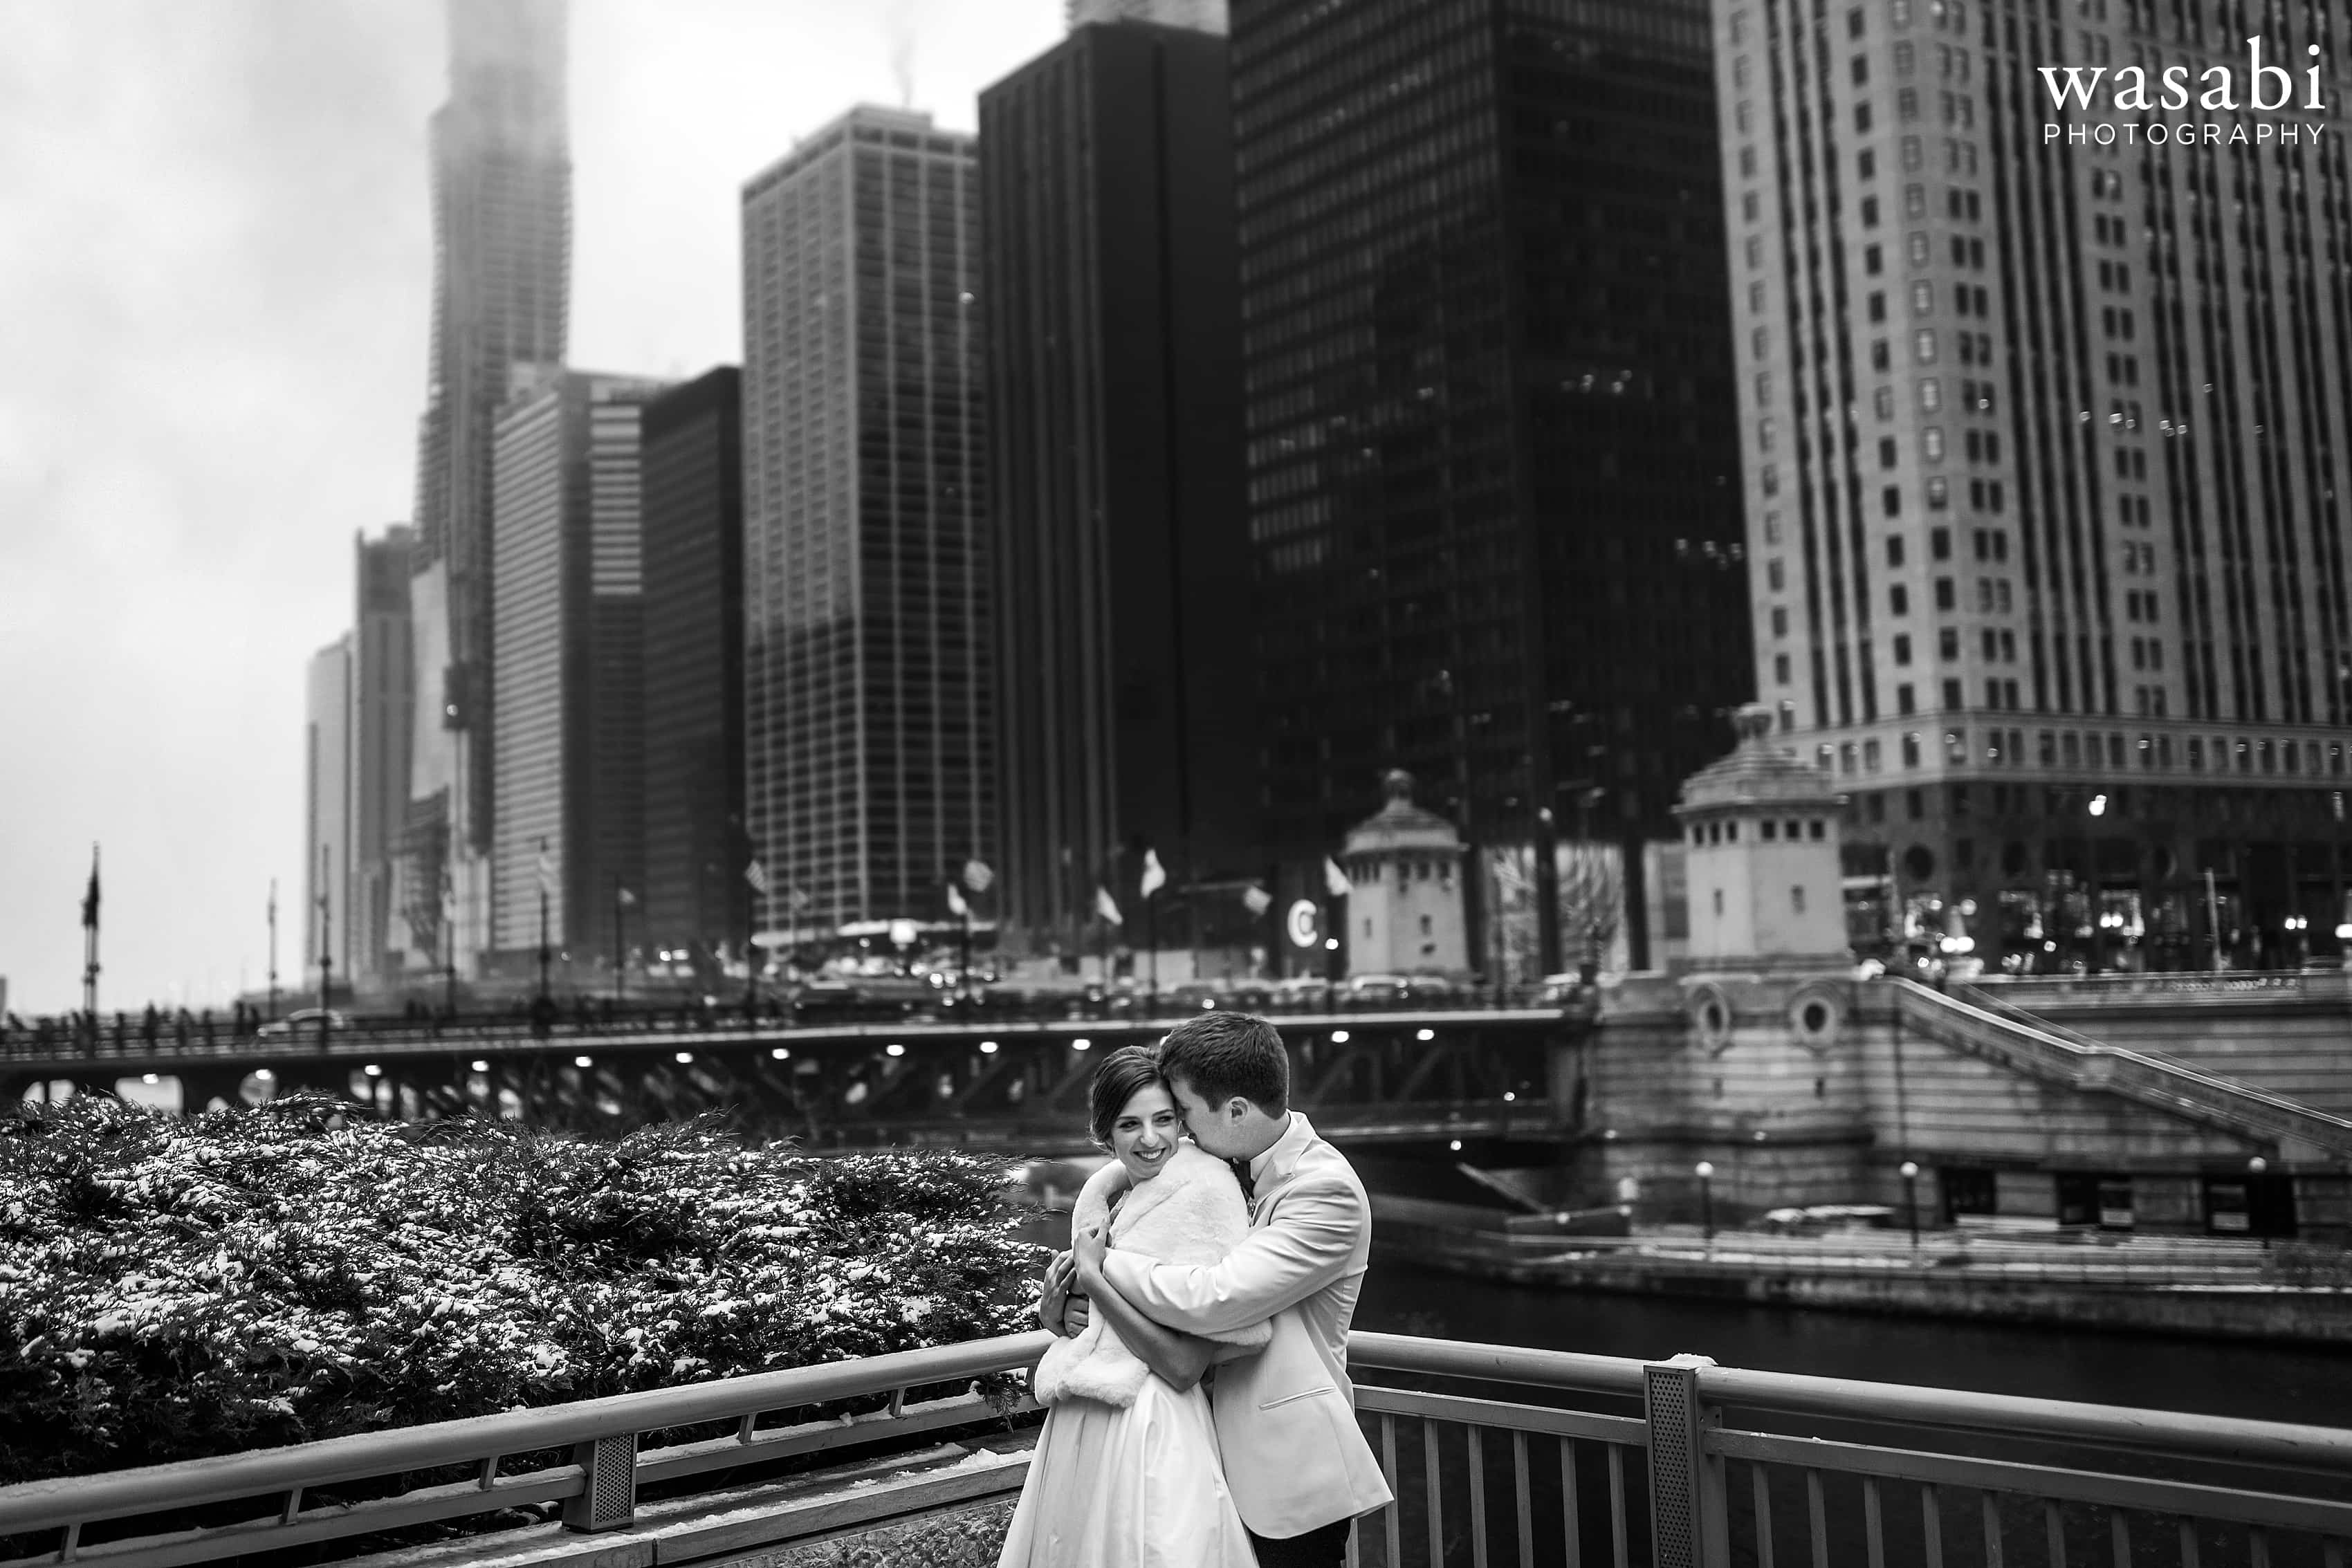 bride and groom pose for a portrait with Chicago skyline and riverwalk in the background during wedding portraits in downtown Chicago